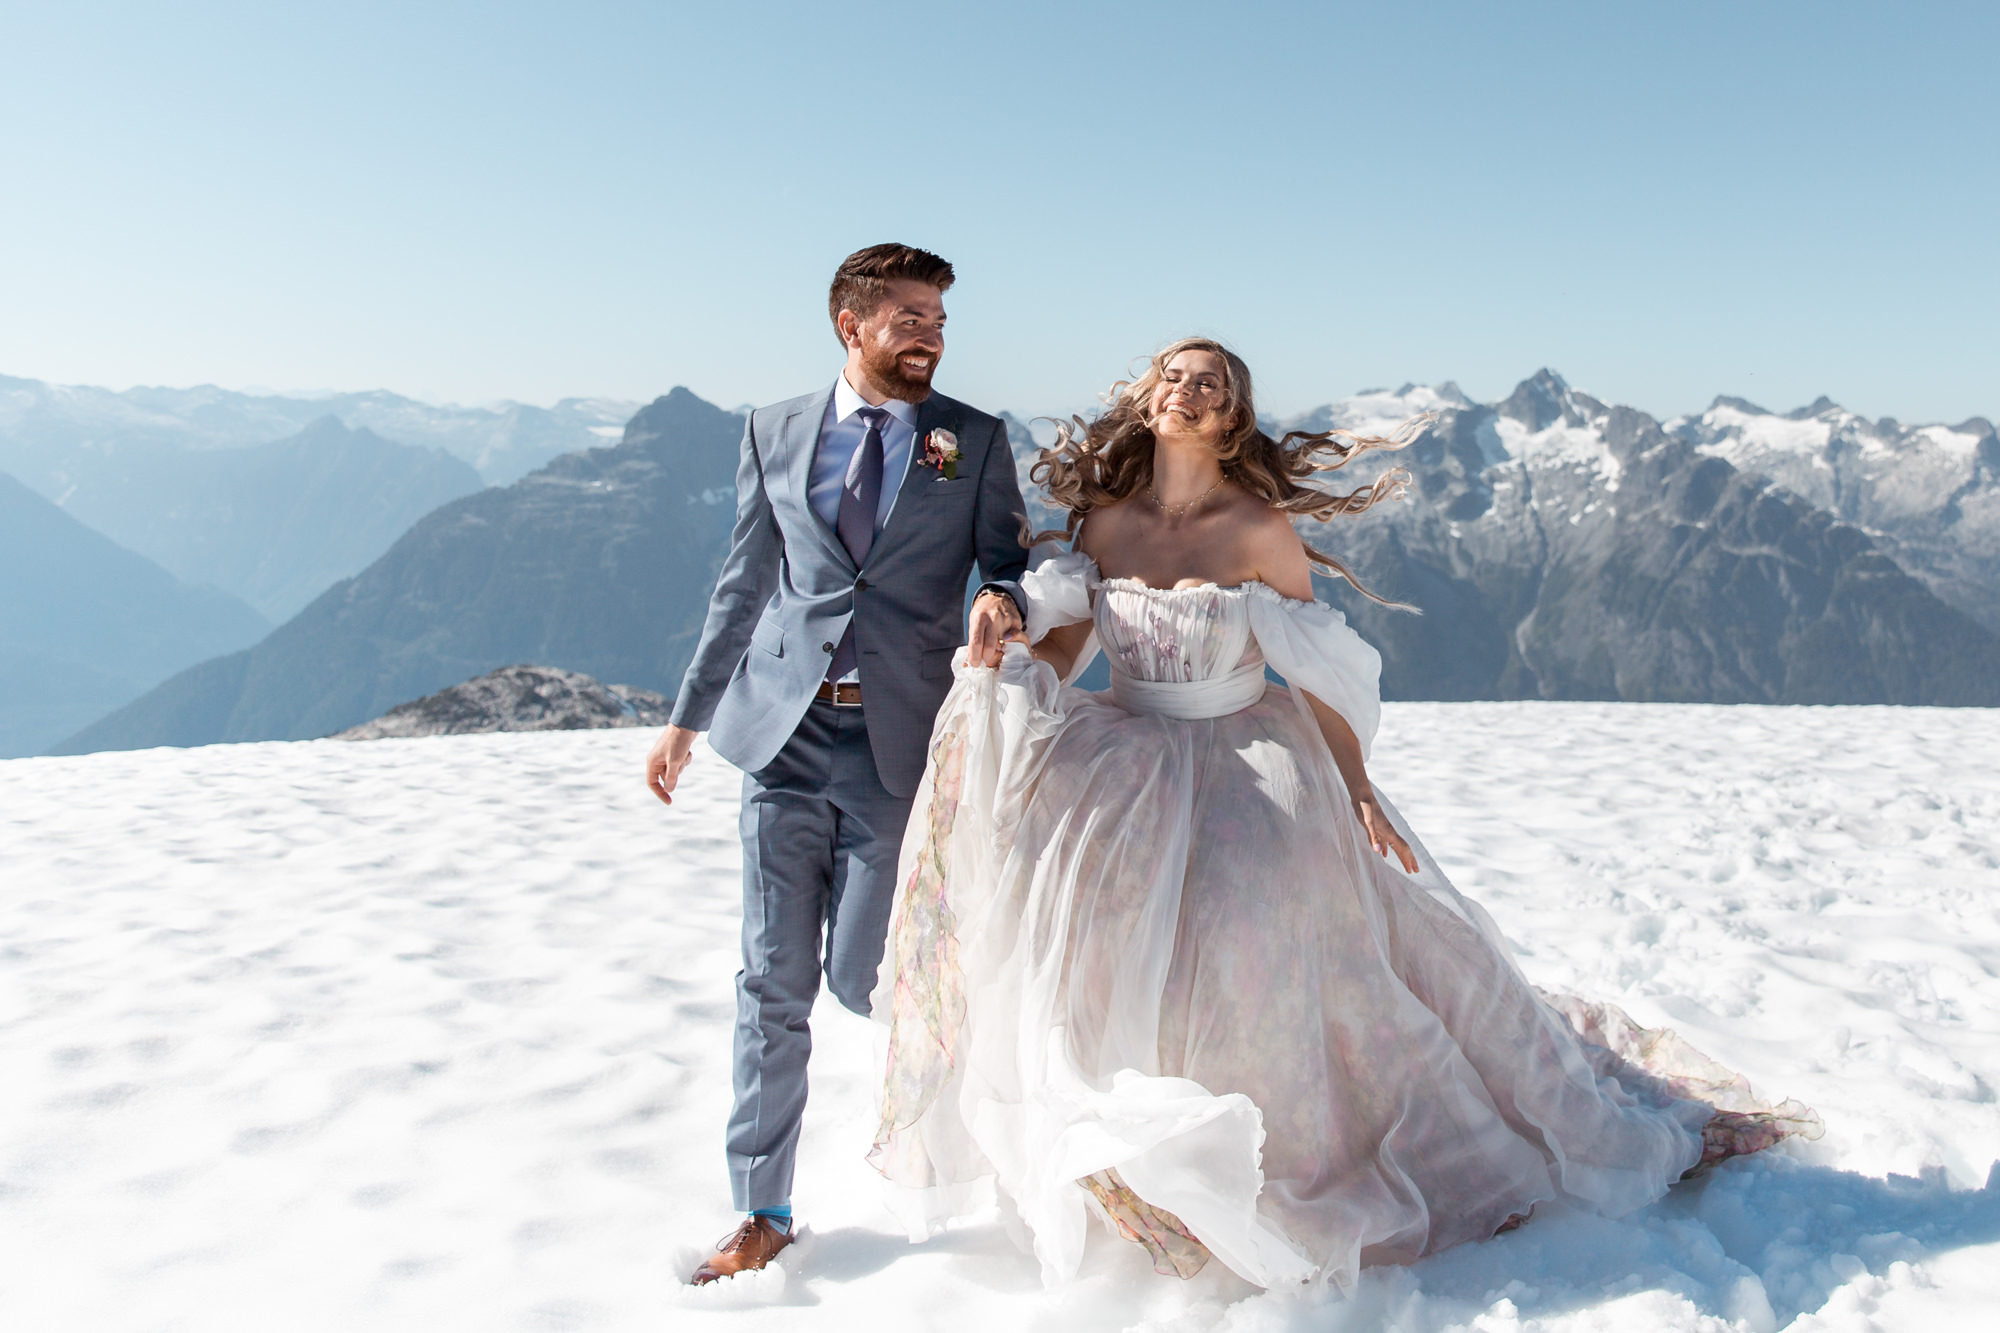 Adventure helicopter elopement in the mountains of British Columbia